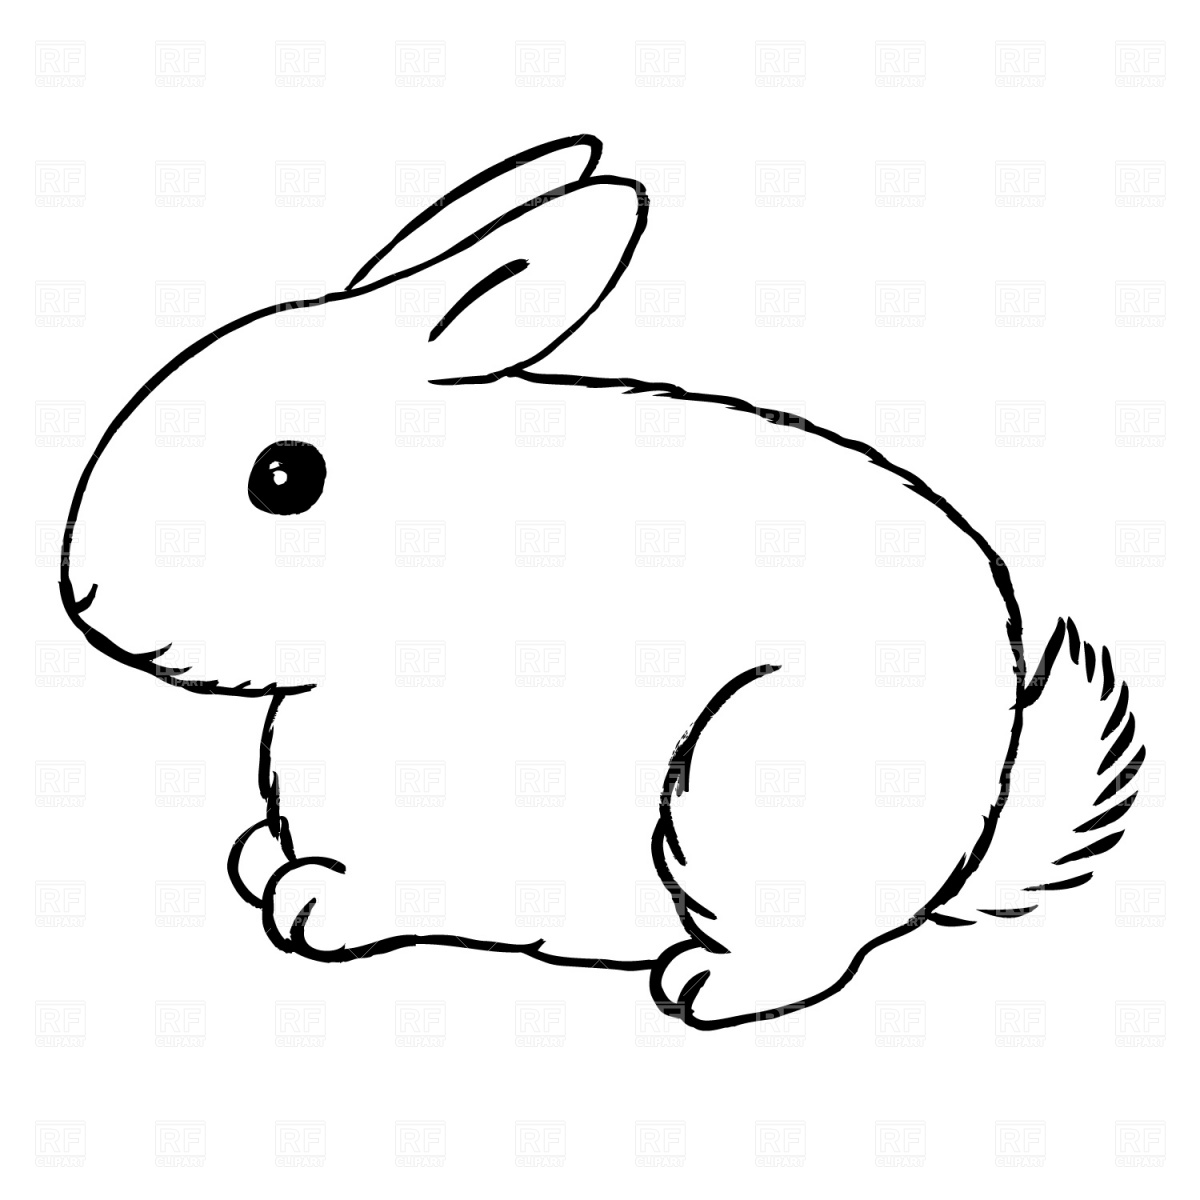 Rabbit bunny clipart black and white free clipart images 5.